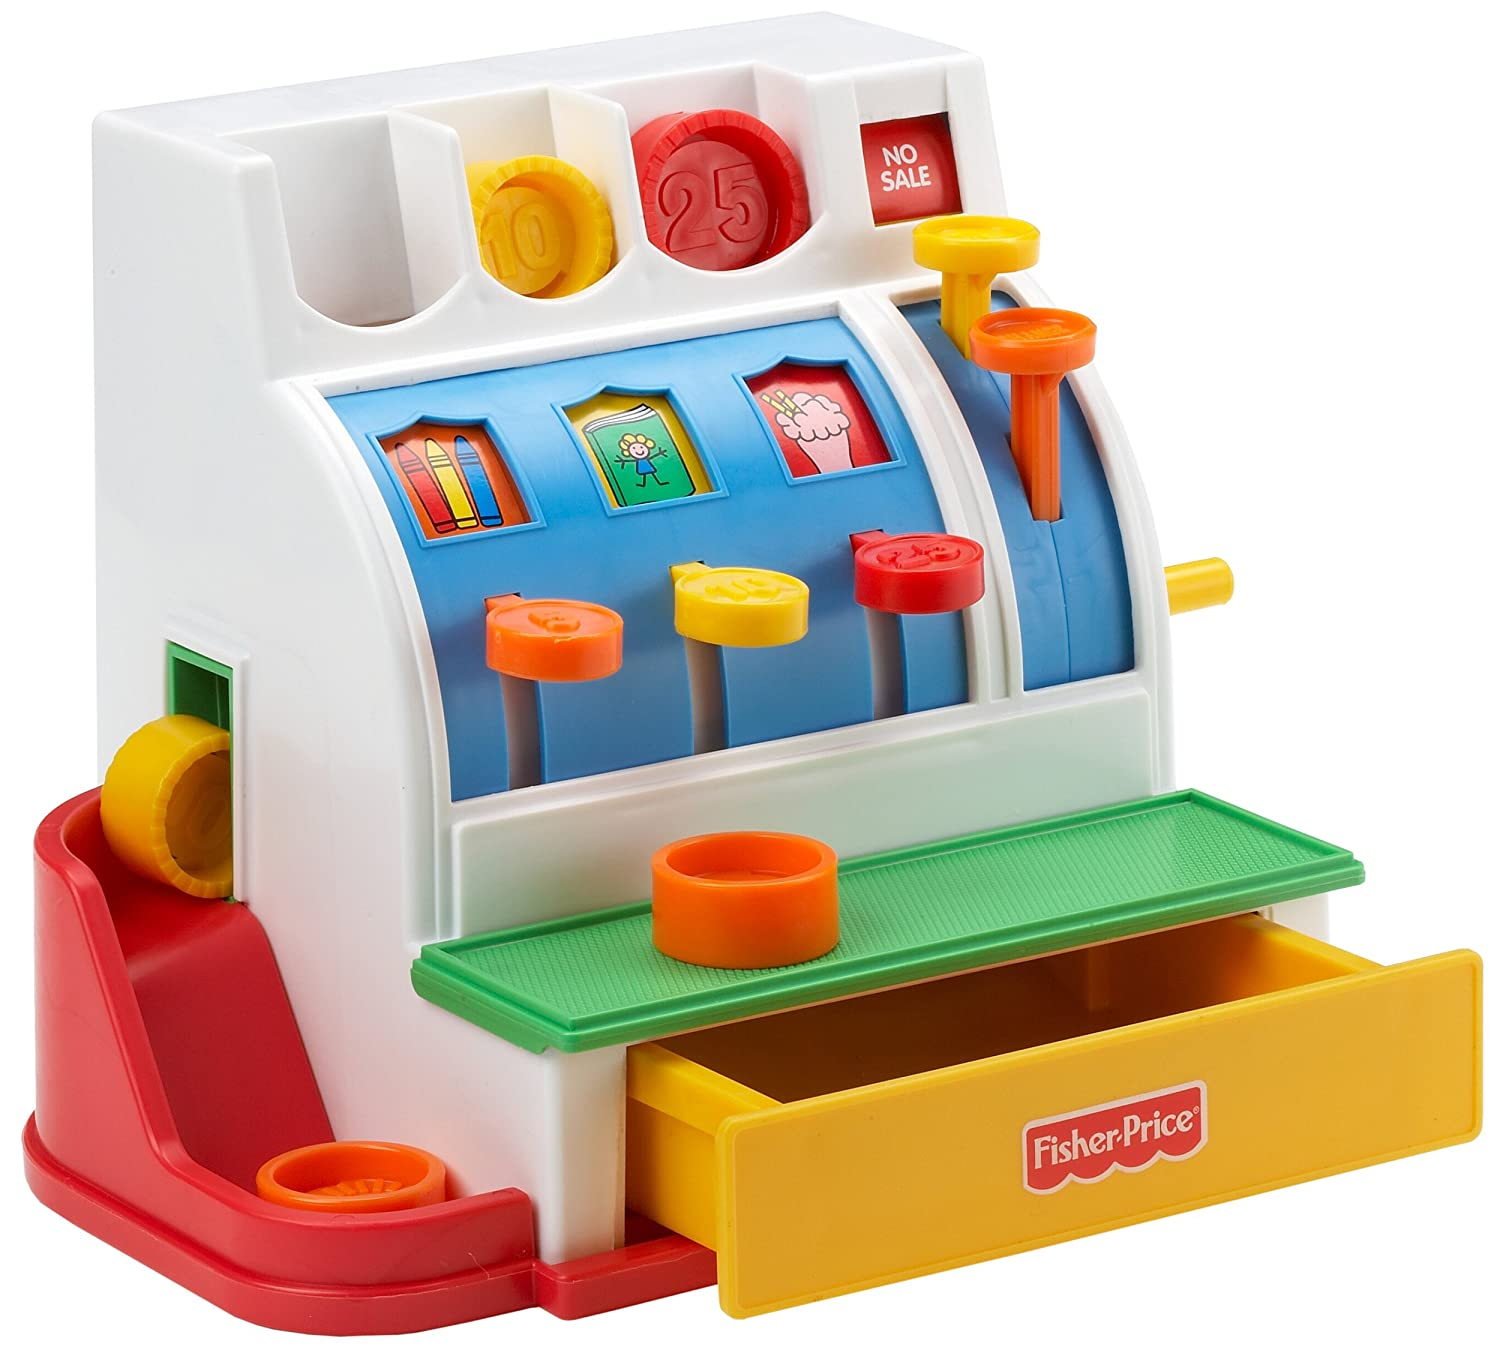 Fisher Price Cash Register Amazon Toys & Games